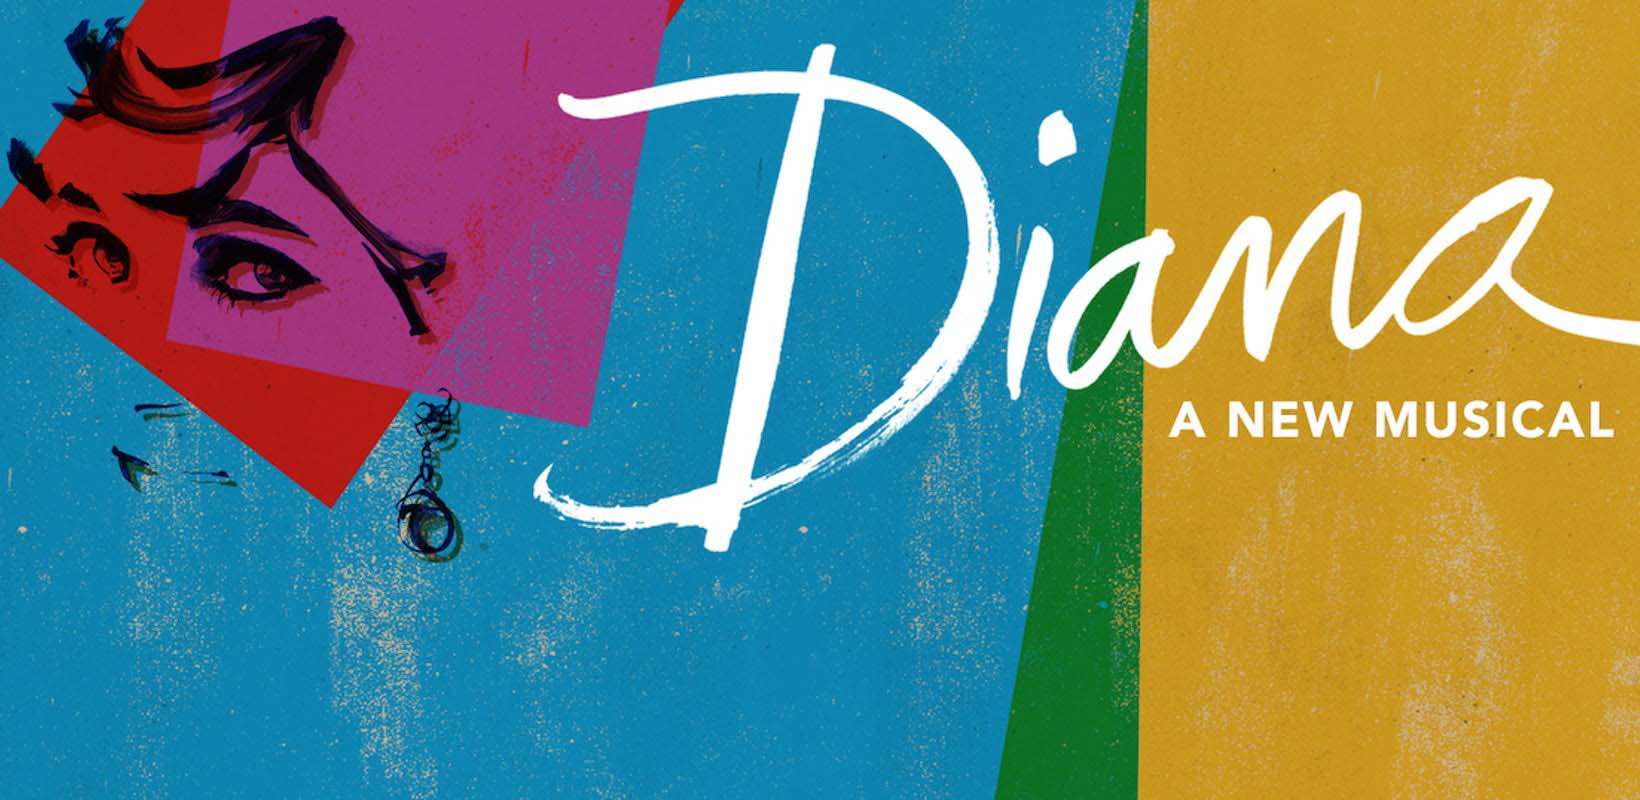 Tickets to Diana A New Musical